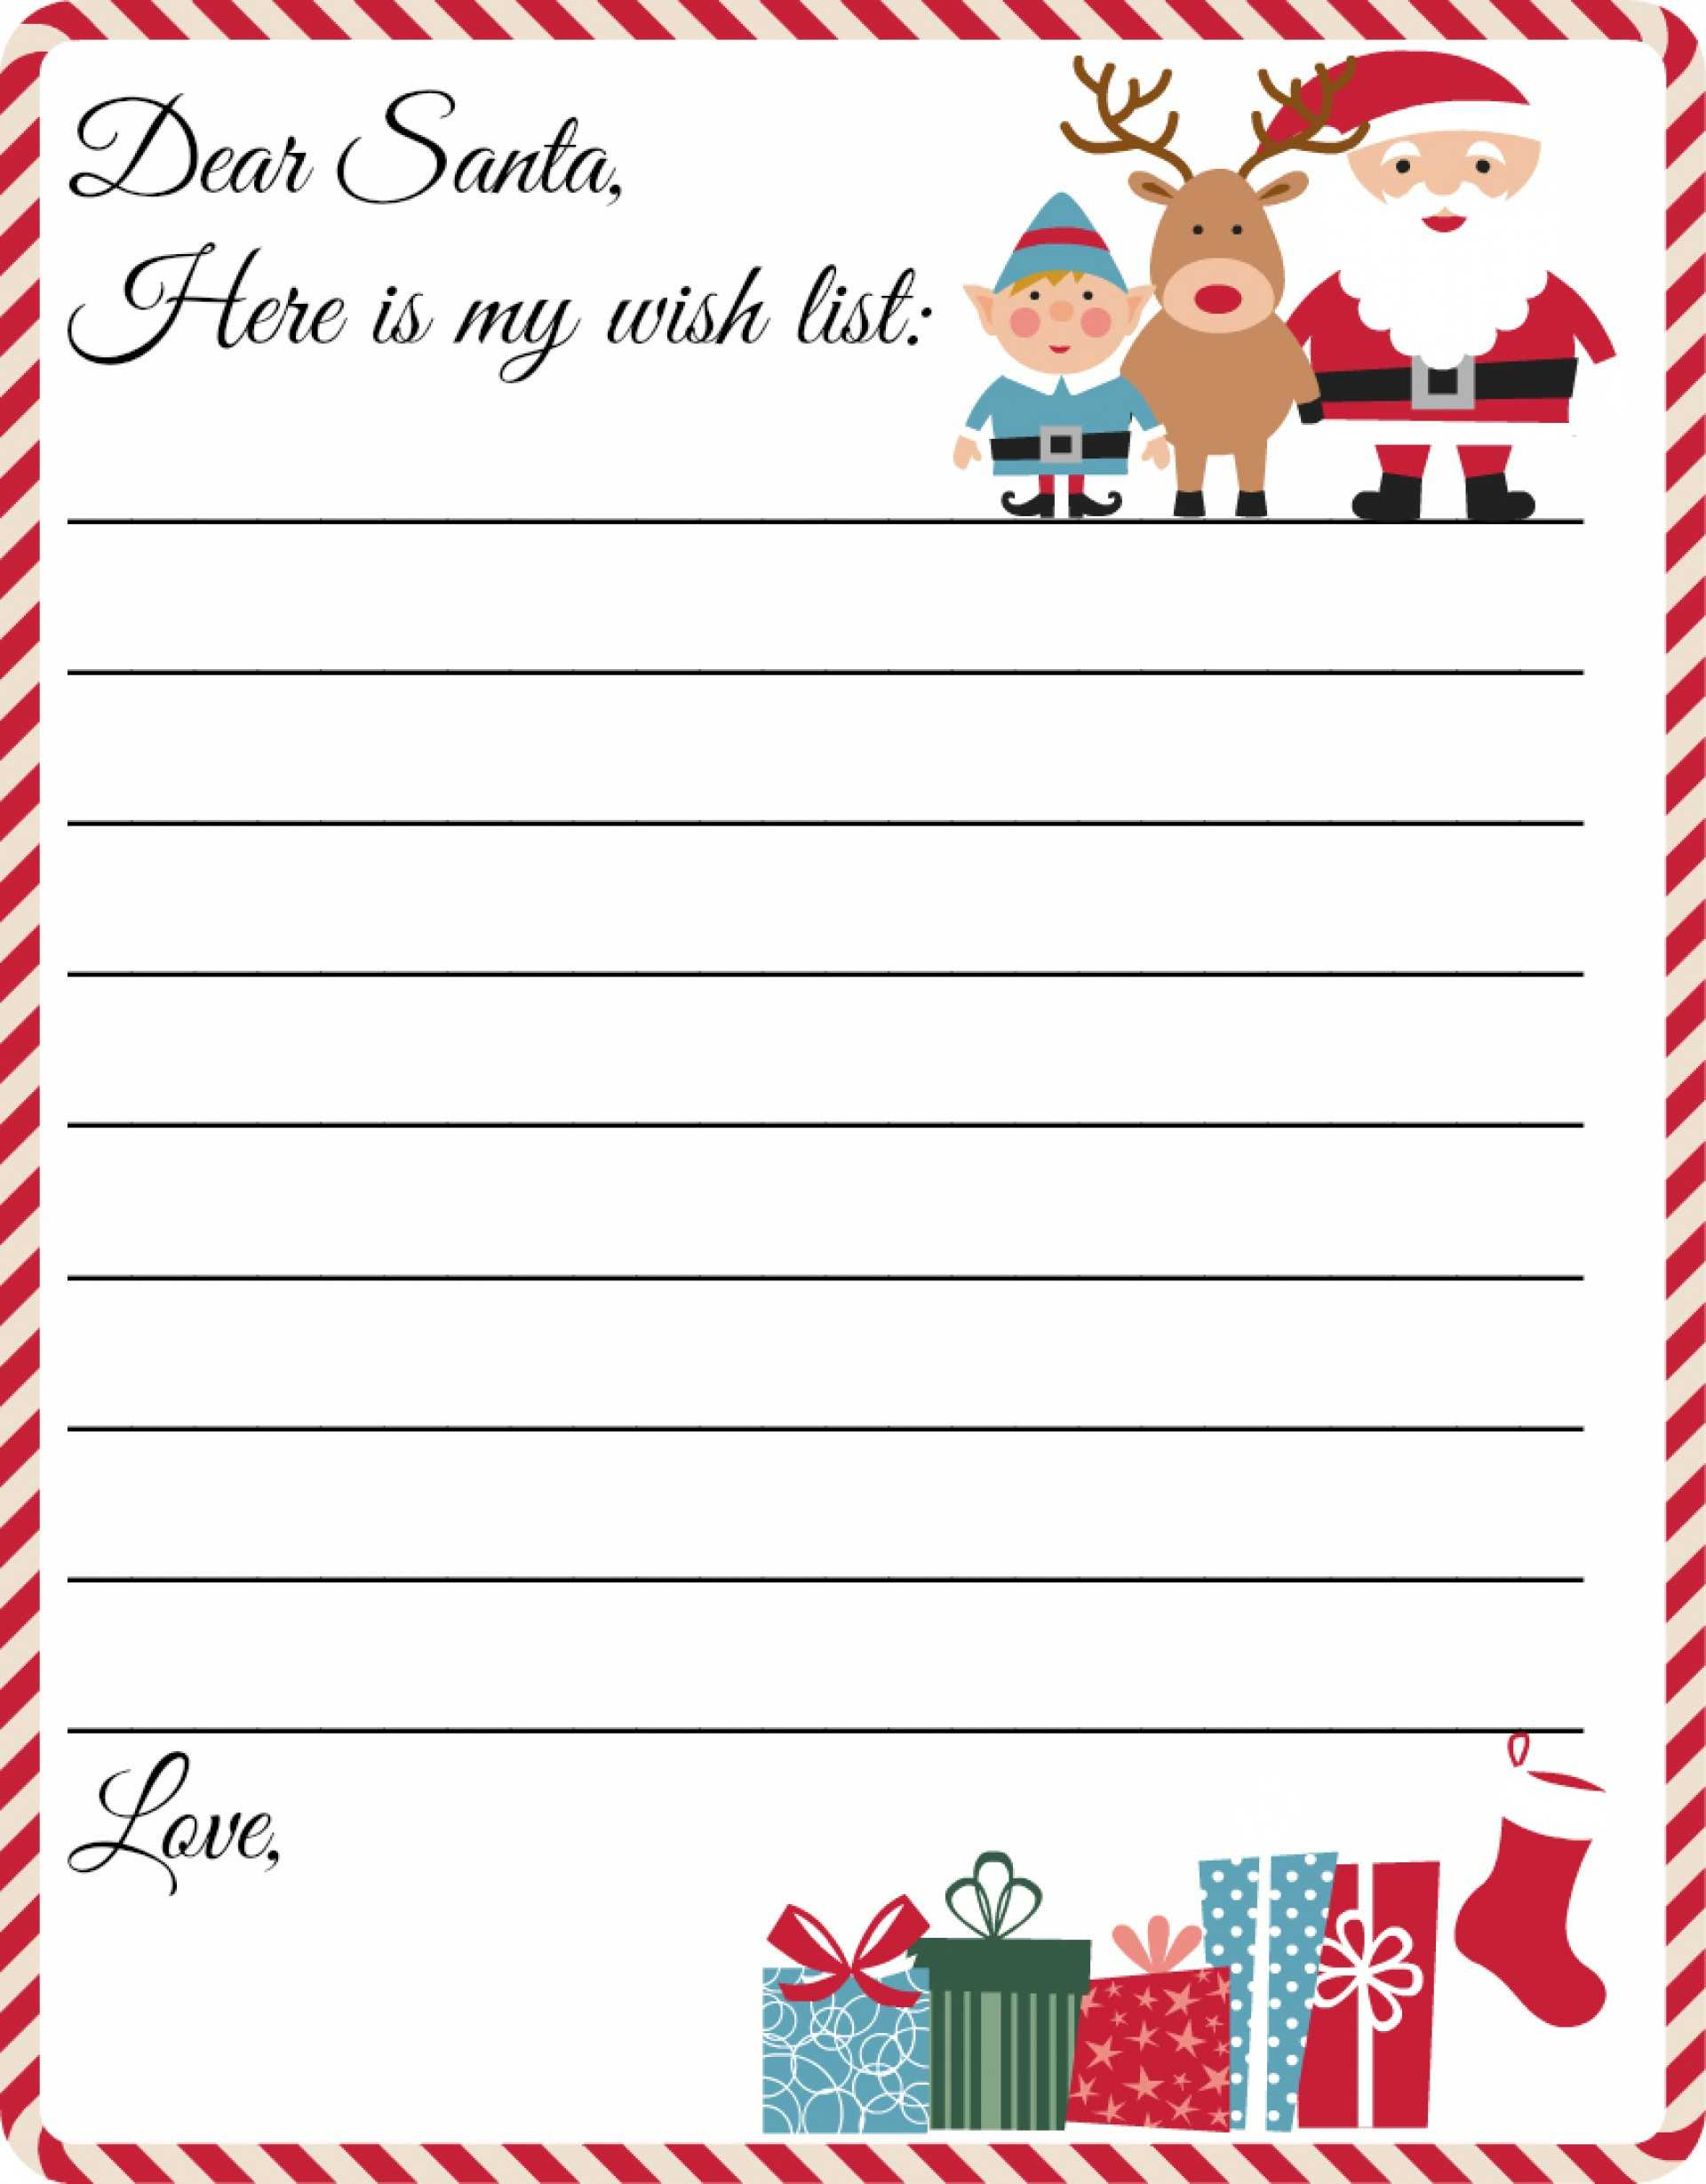 006 Template Ideas Ms Word Letter From Santa Letters To With Regard To Letter From Santa Template Word